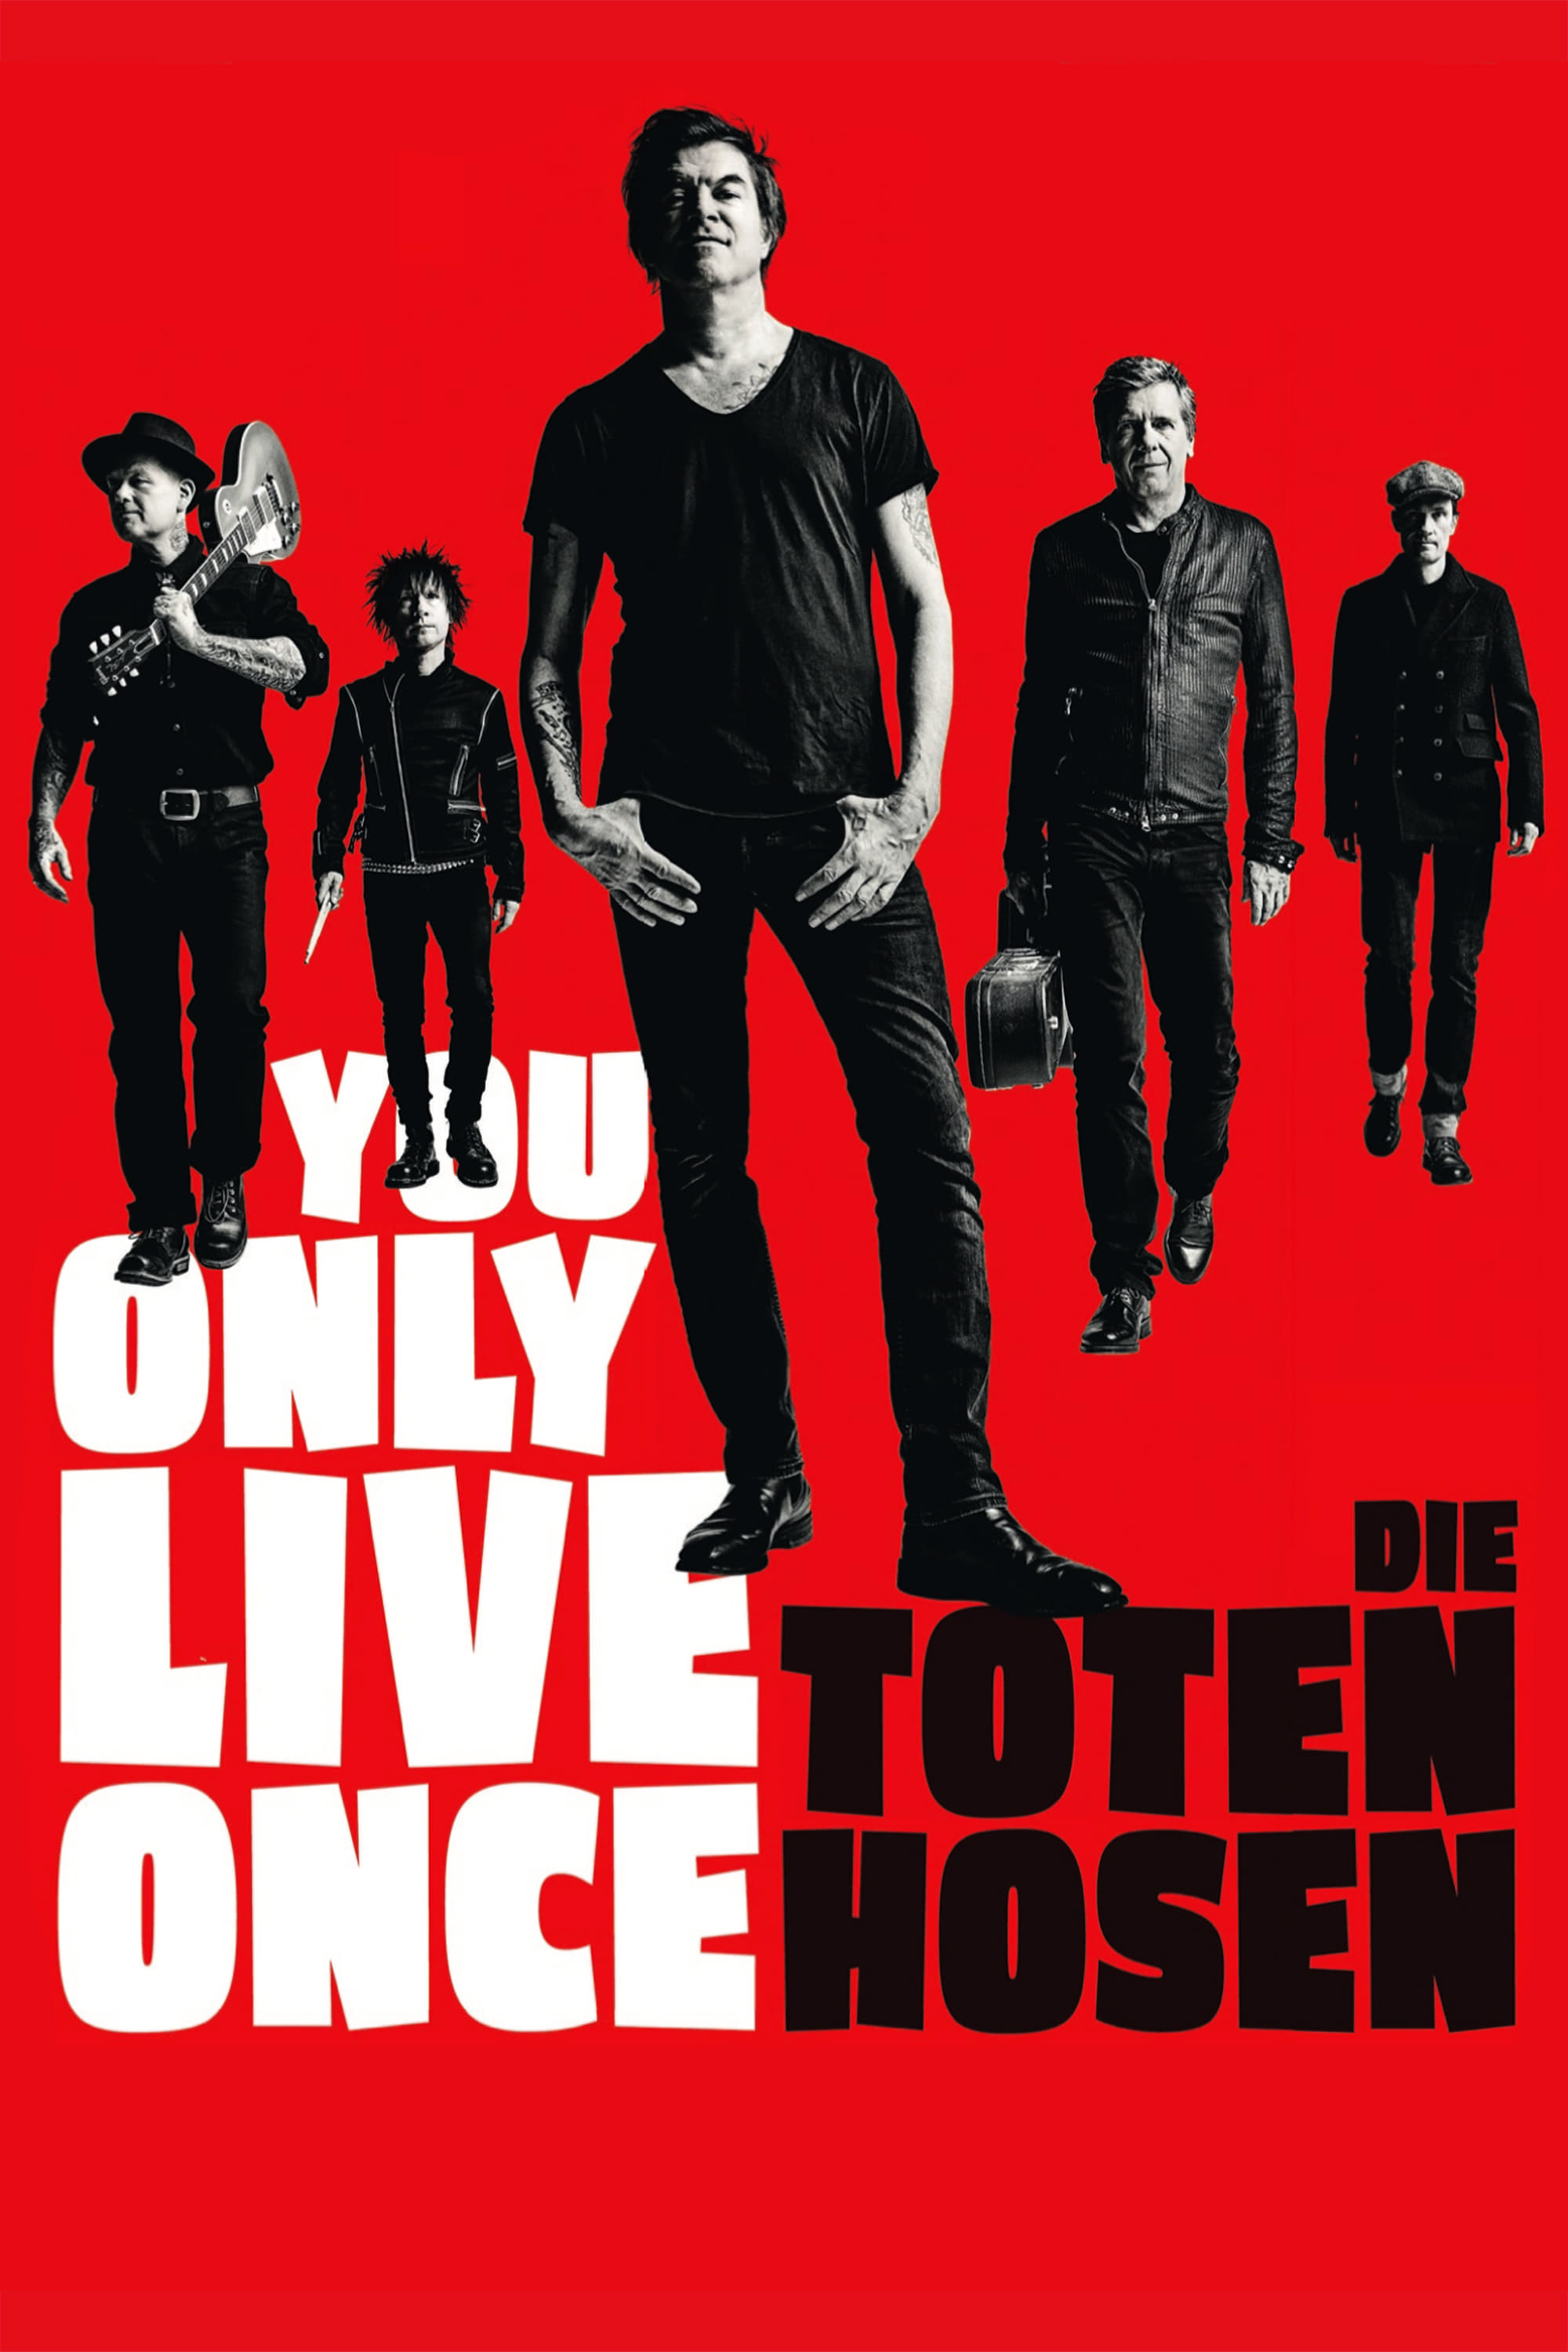 You Only Live Once - Die Toten Hosen on Tour (2019)